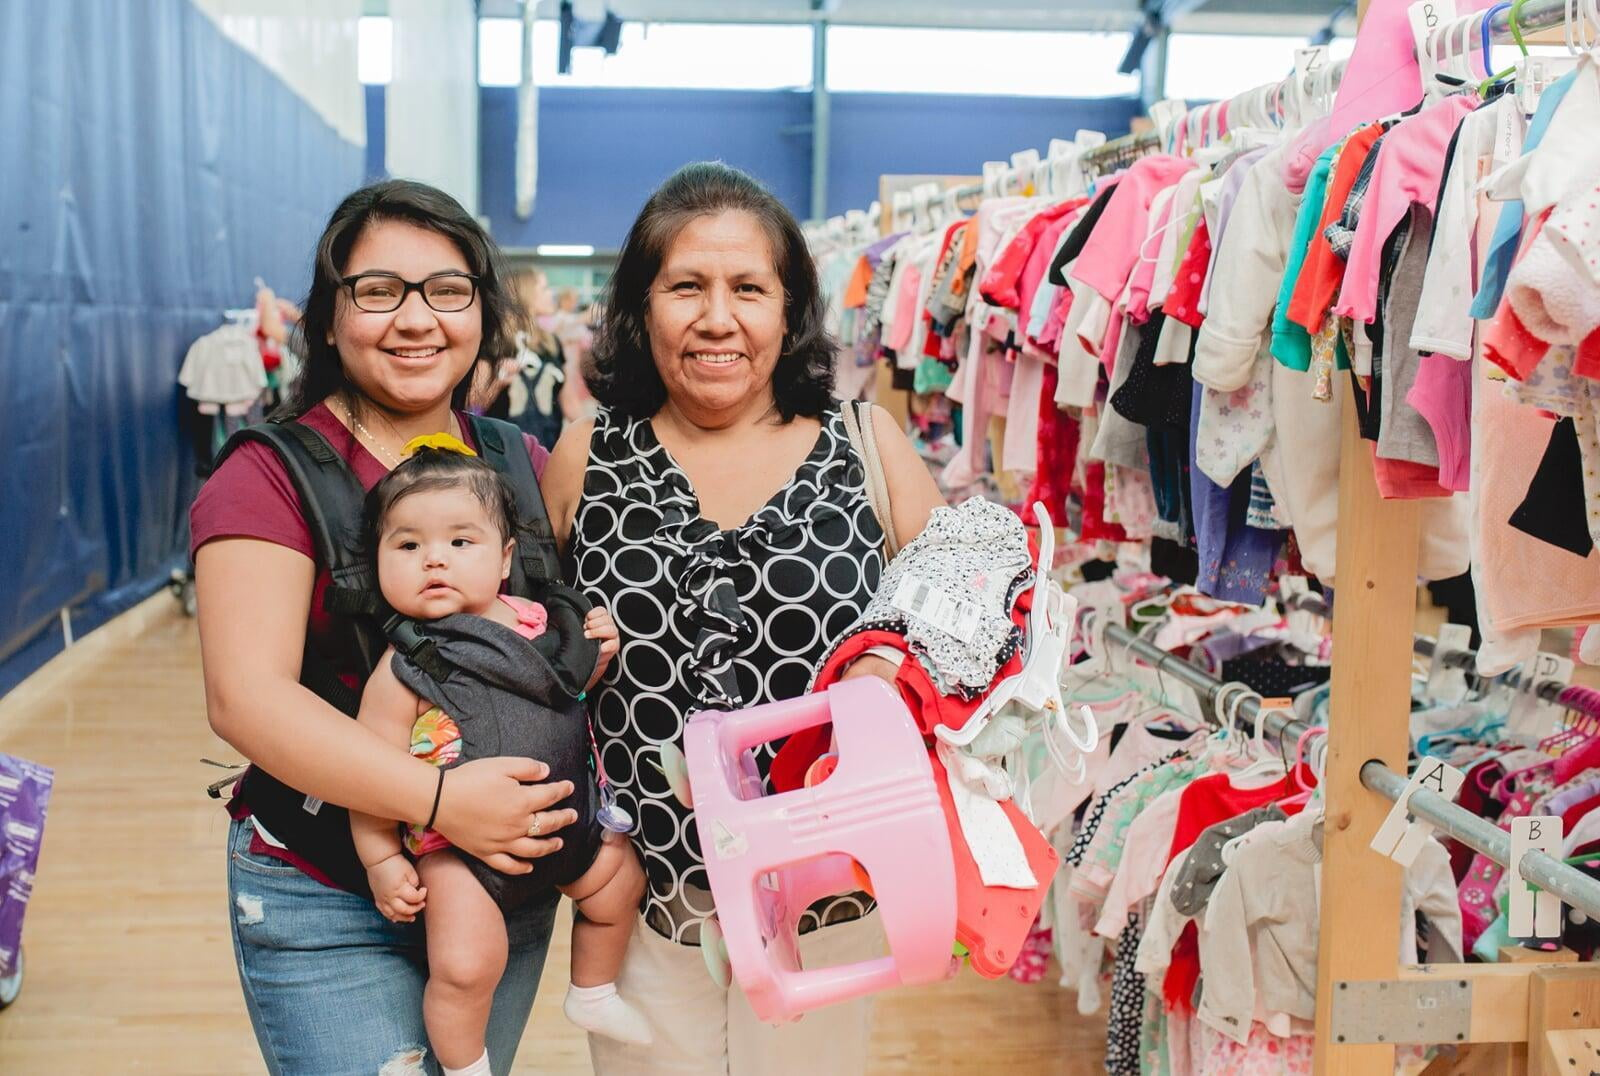 A mom, abuela and granddaughter attend a JBF sale in Dallas. Abuela is holding a babyseat.